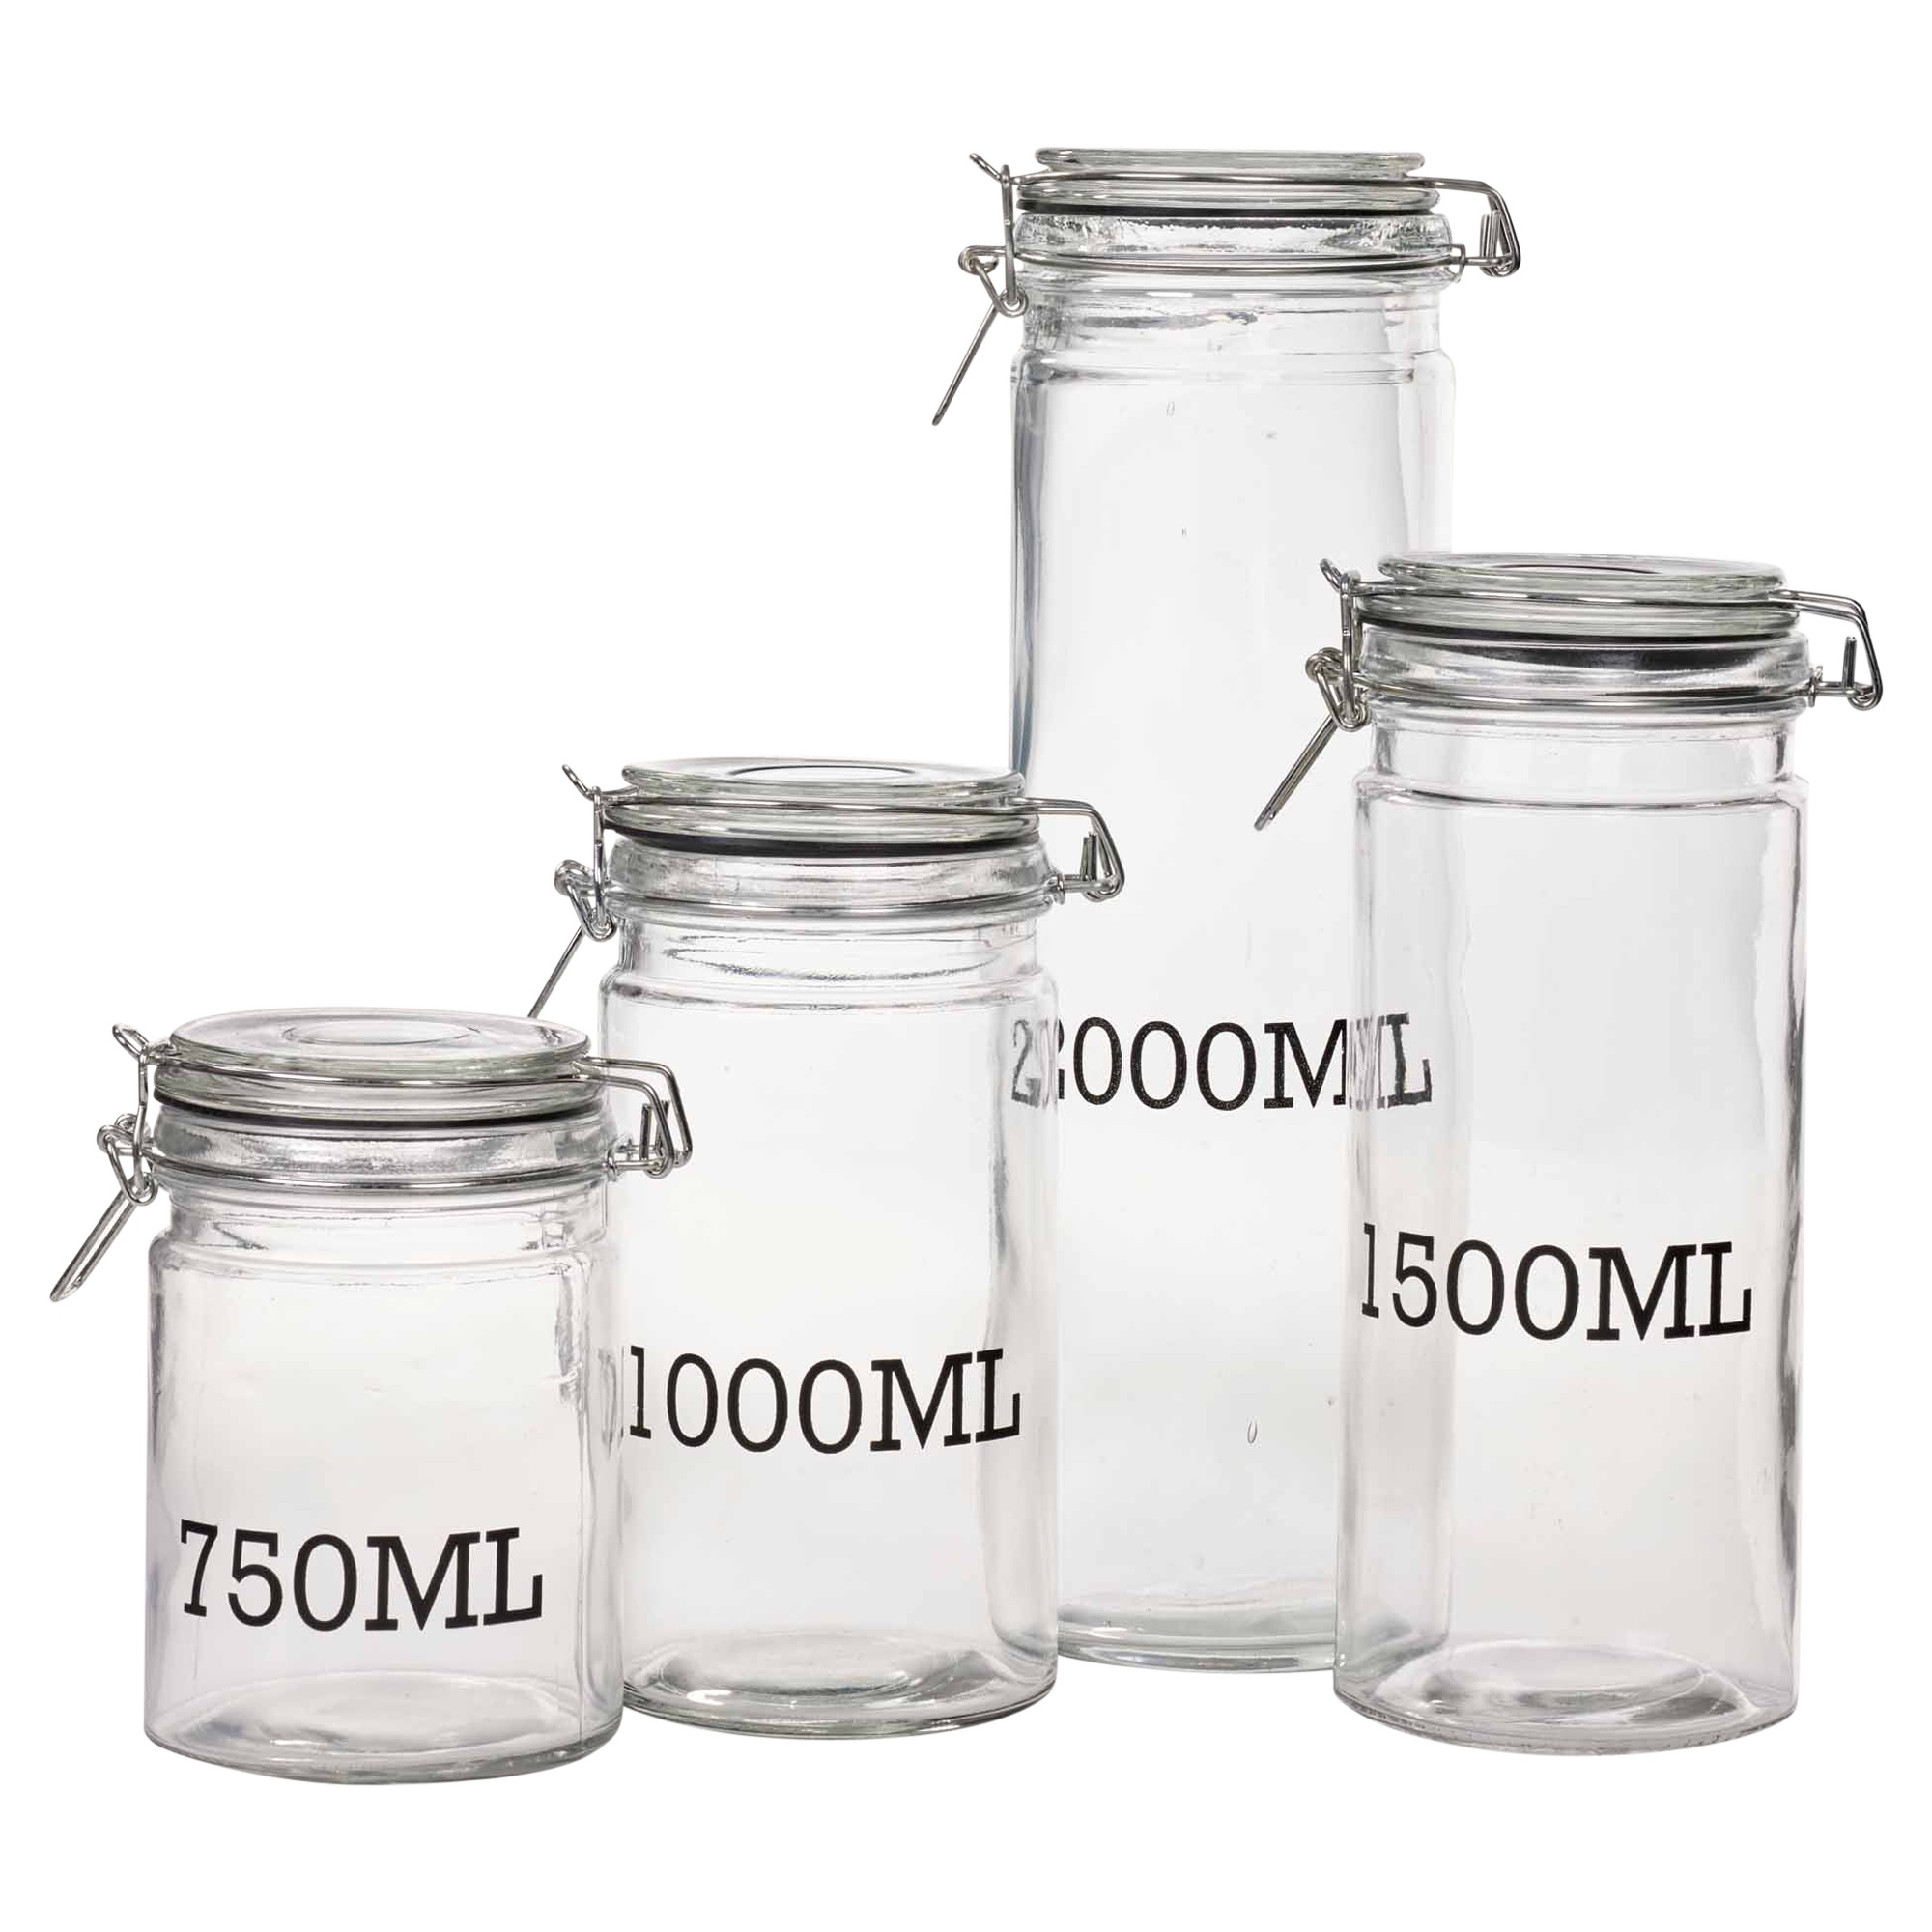 Uline stocks a huge selection of glass containers, 1 gallon glass jars and wide mouth glass jars. Order by 6 pm for same day shipping. Over 34, products in stock. 11 locations across USA, Canada and Mexico for fast delivery of glass containers.